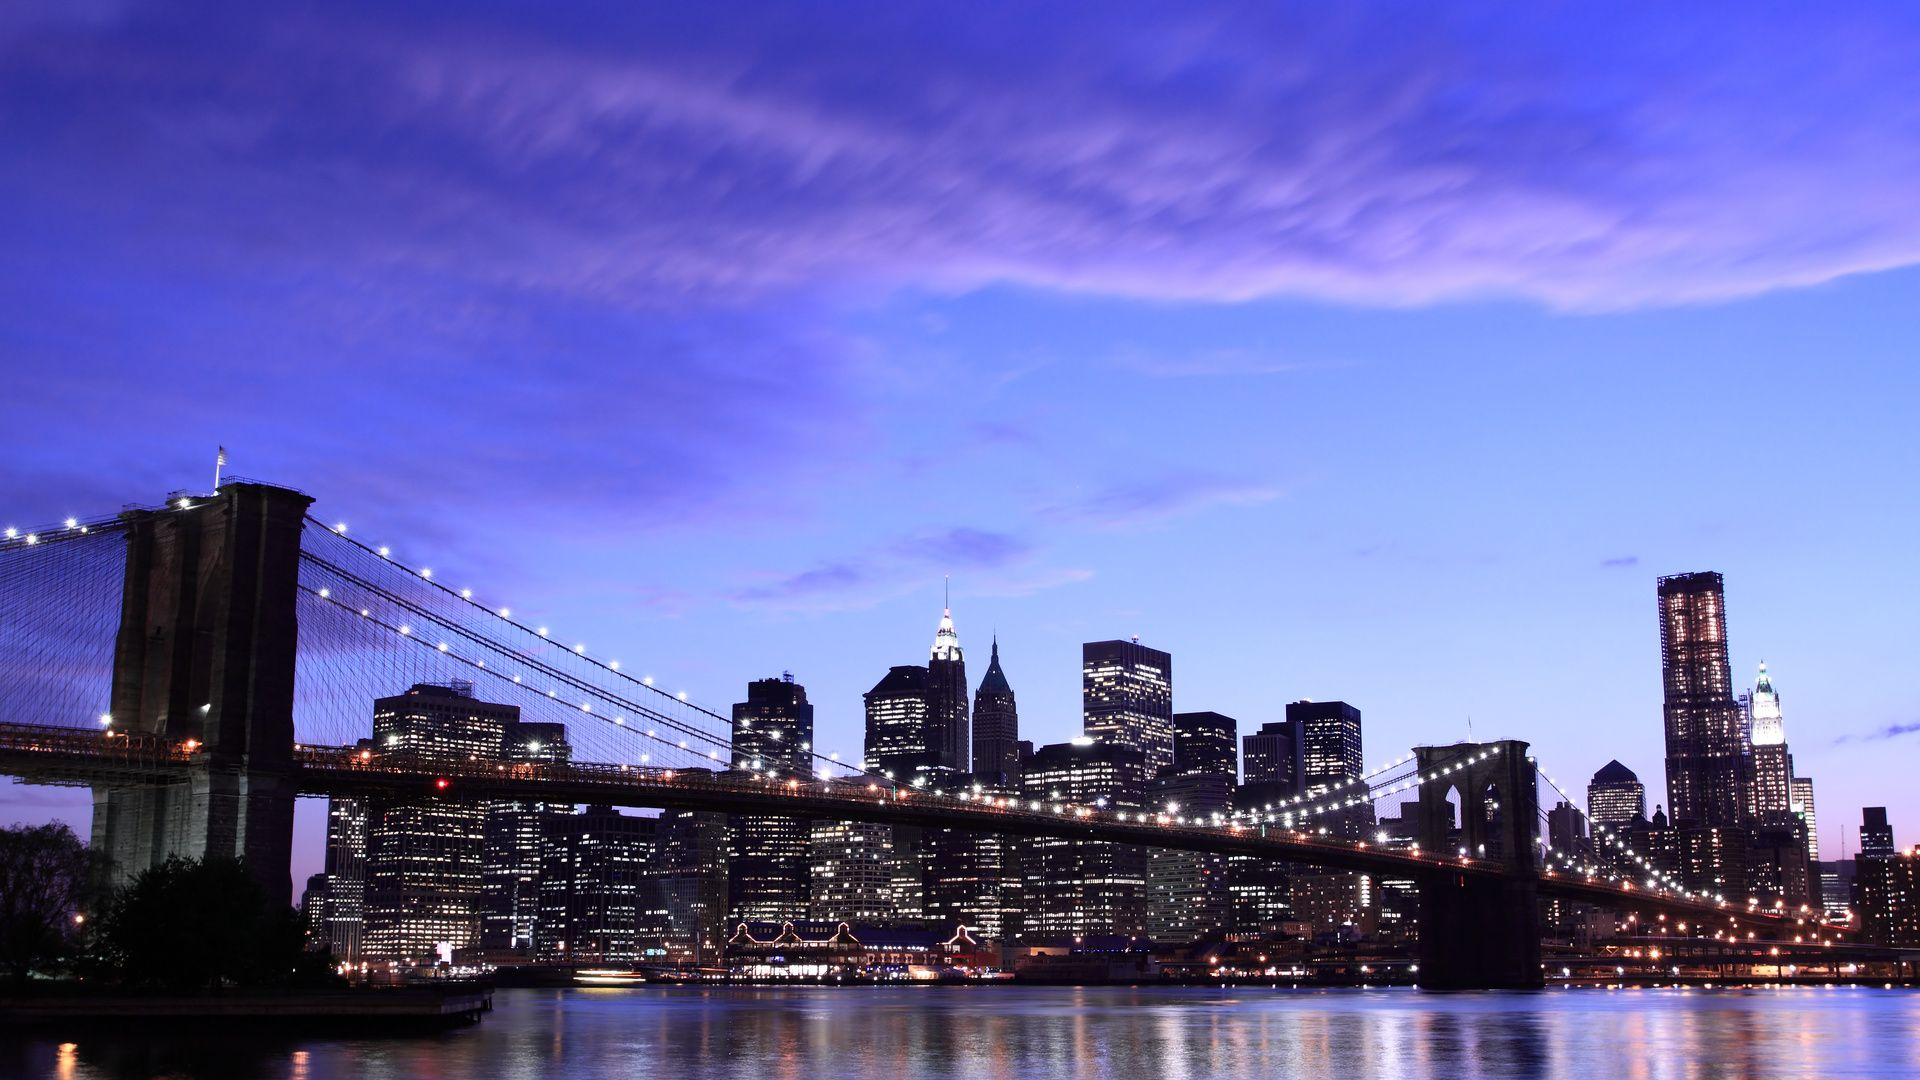 Nyc Skyline full screen hd wallpaper